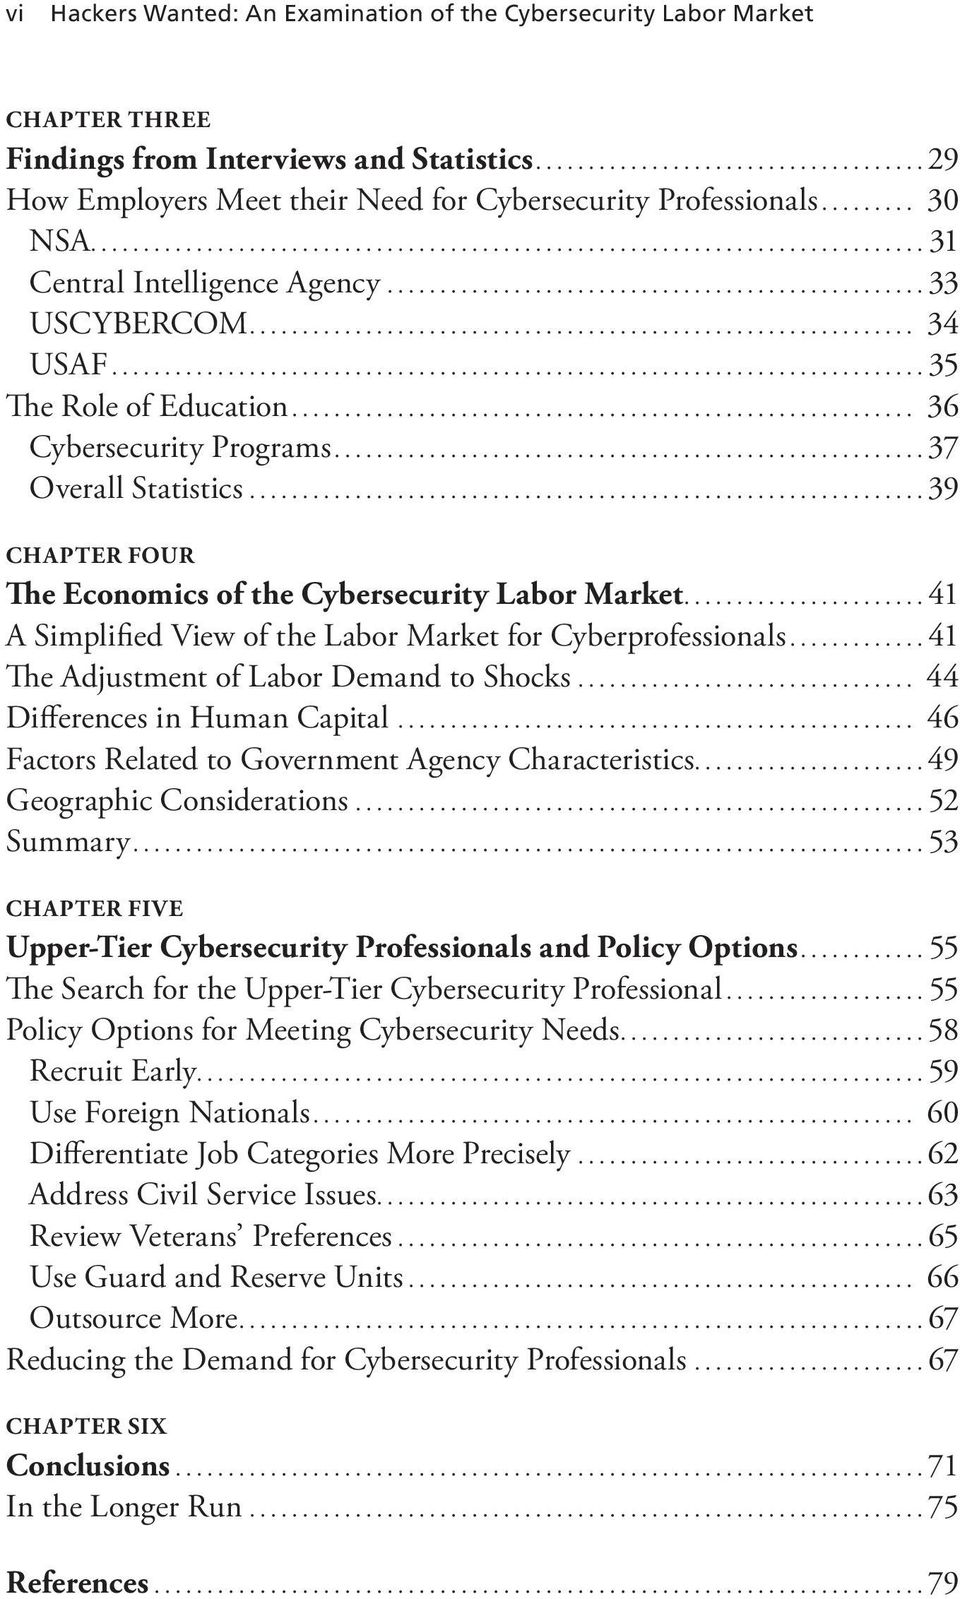 ..39 Chapter Four The Economics of the Cybersecurity Labor Market...41 A Simplified View of the Labor Market for Cyberprofessionals...41 The Adjustment of Labor Demand to Shocks.